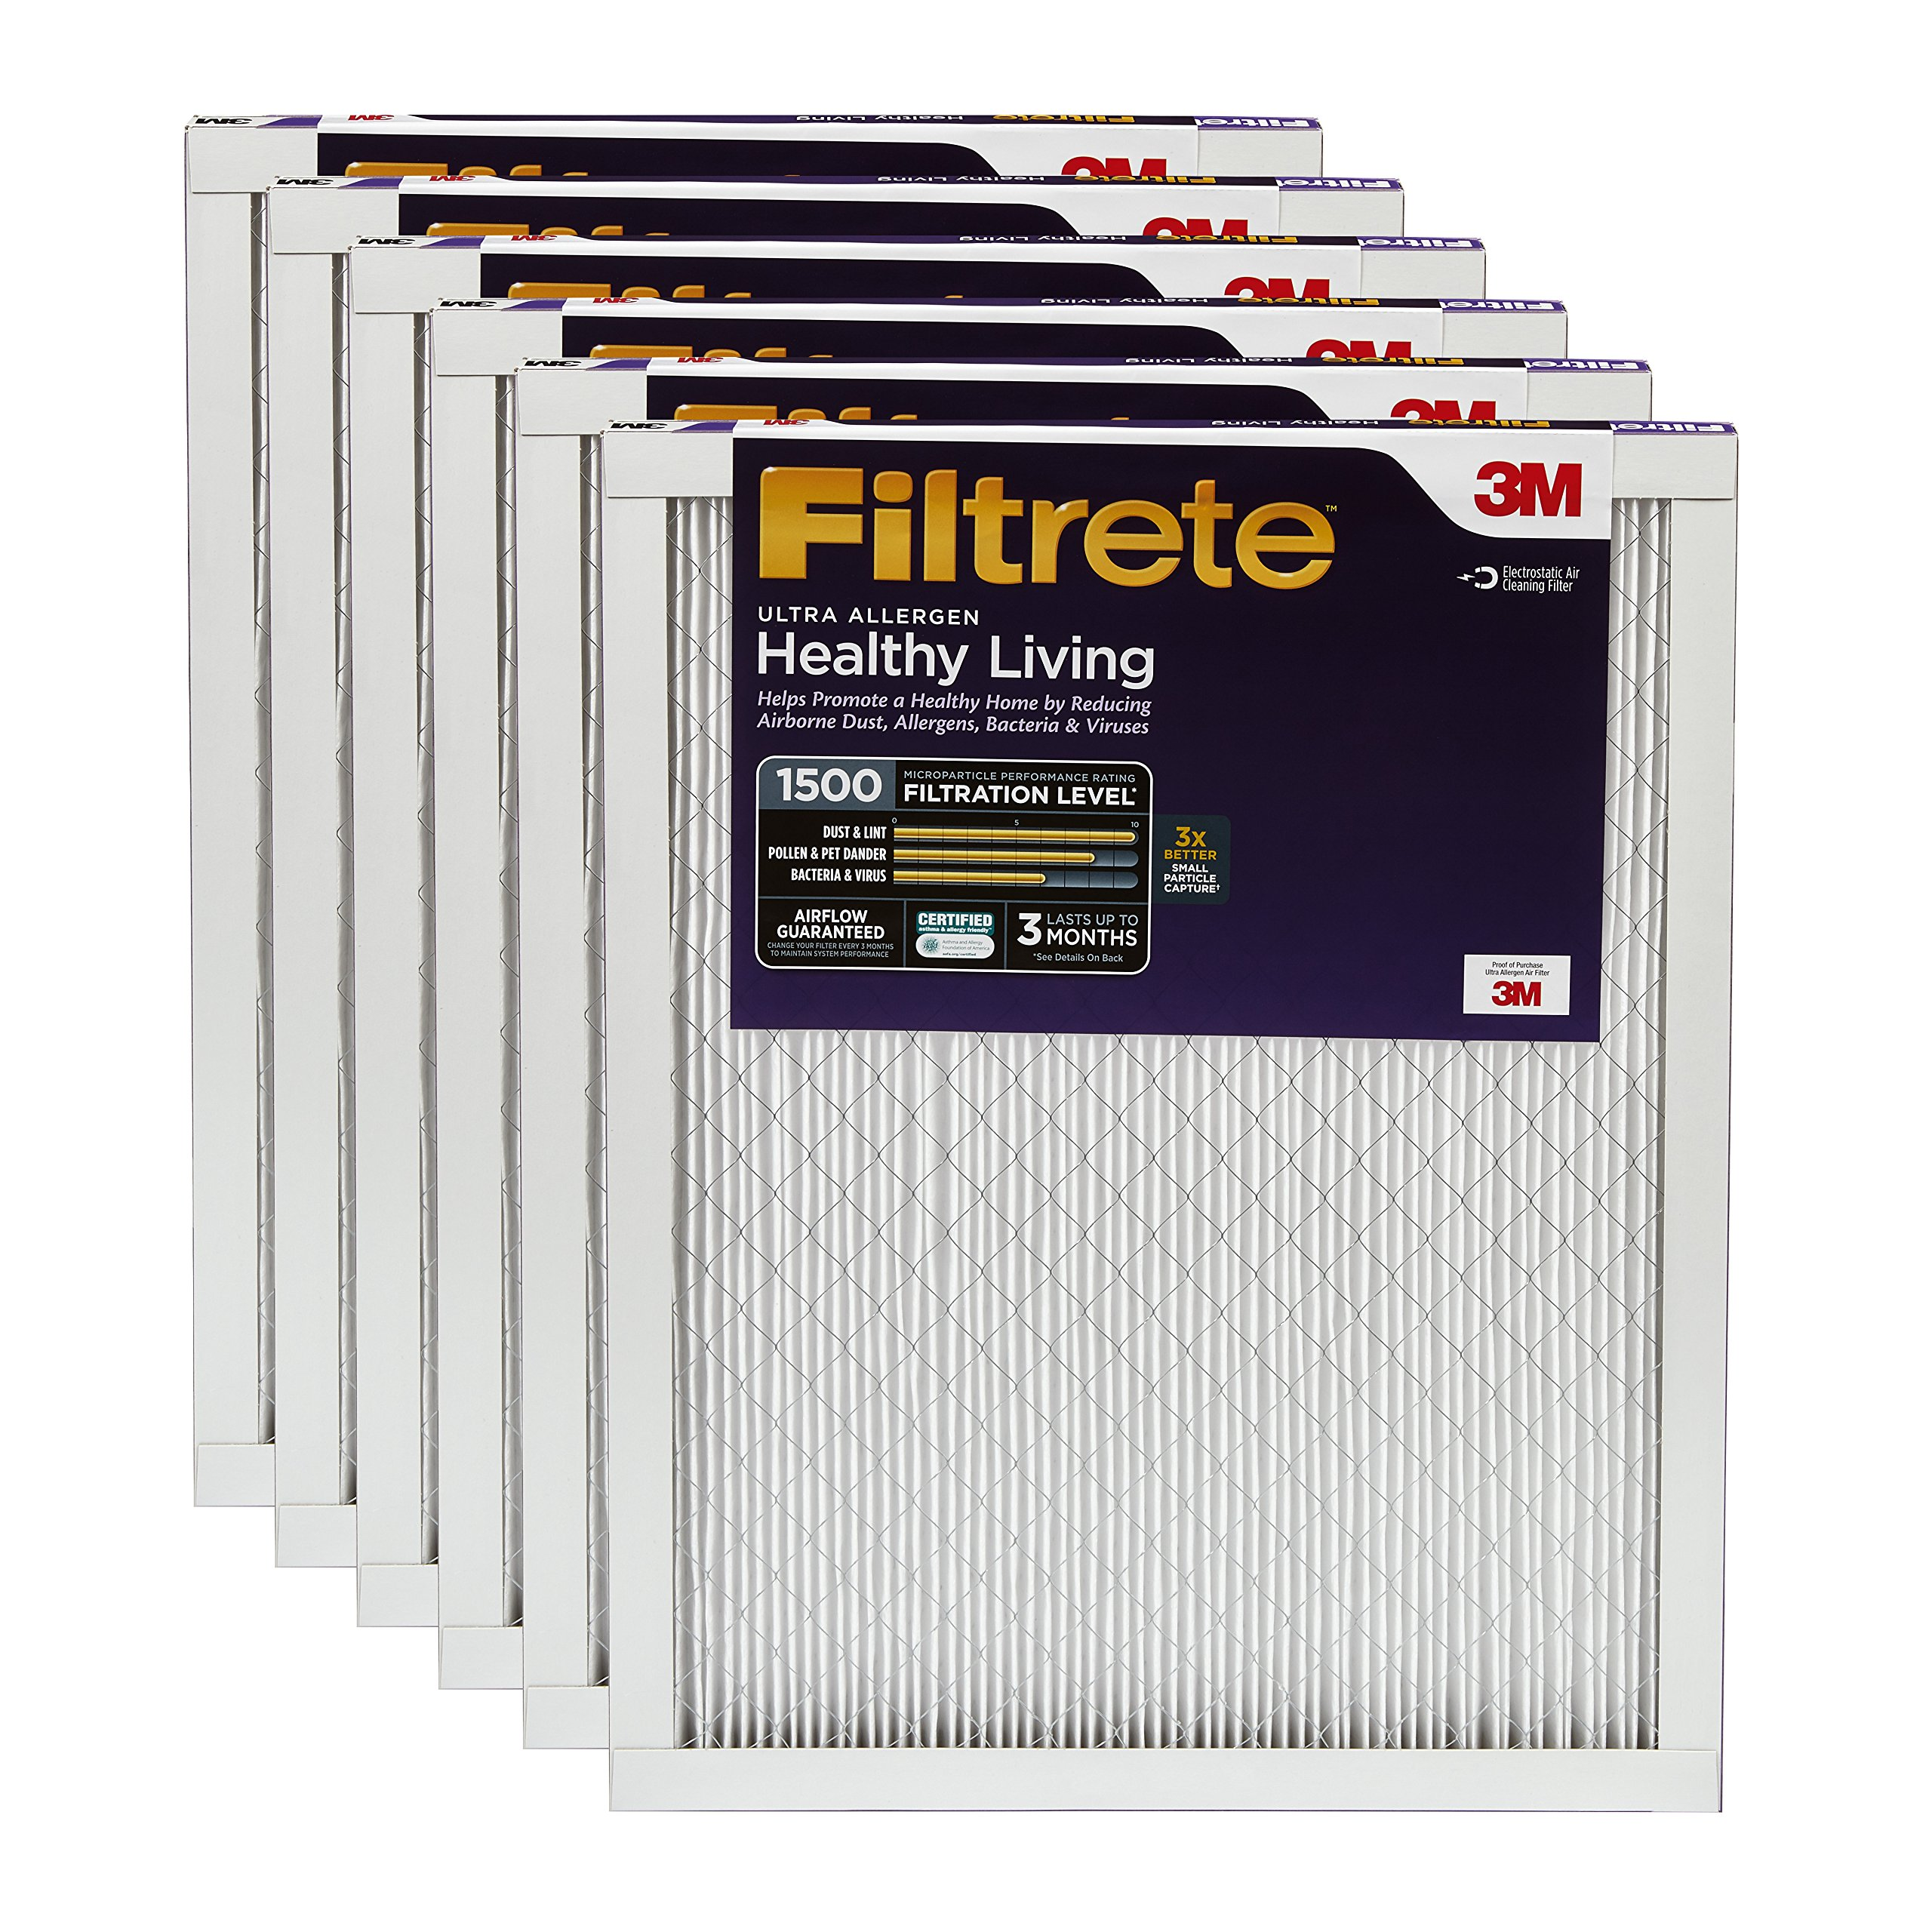 Filtrete MPR 1500 16 x 24 x 1 Healthy Living Ultra Allergen Reduction AC Furnace Air Filter, 6-Pack